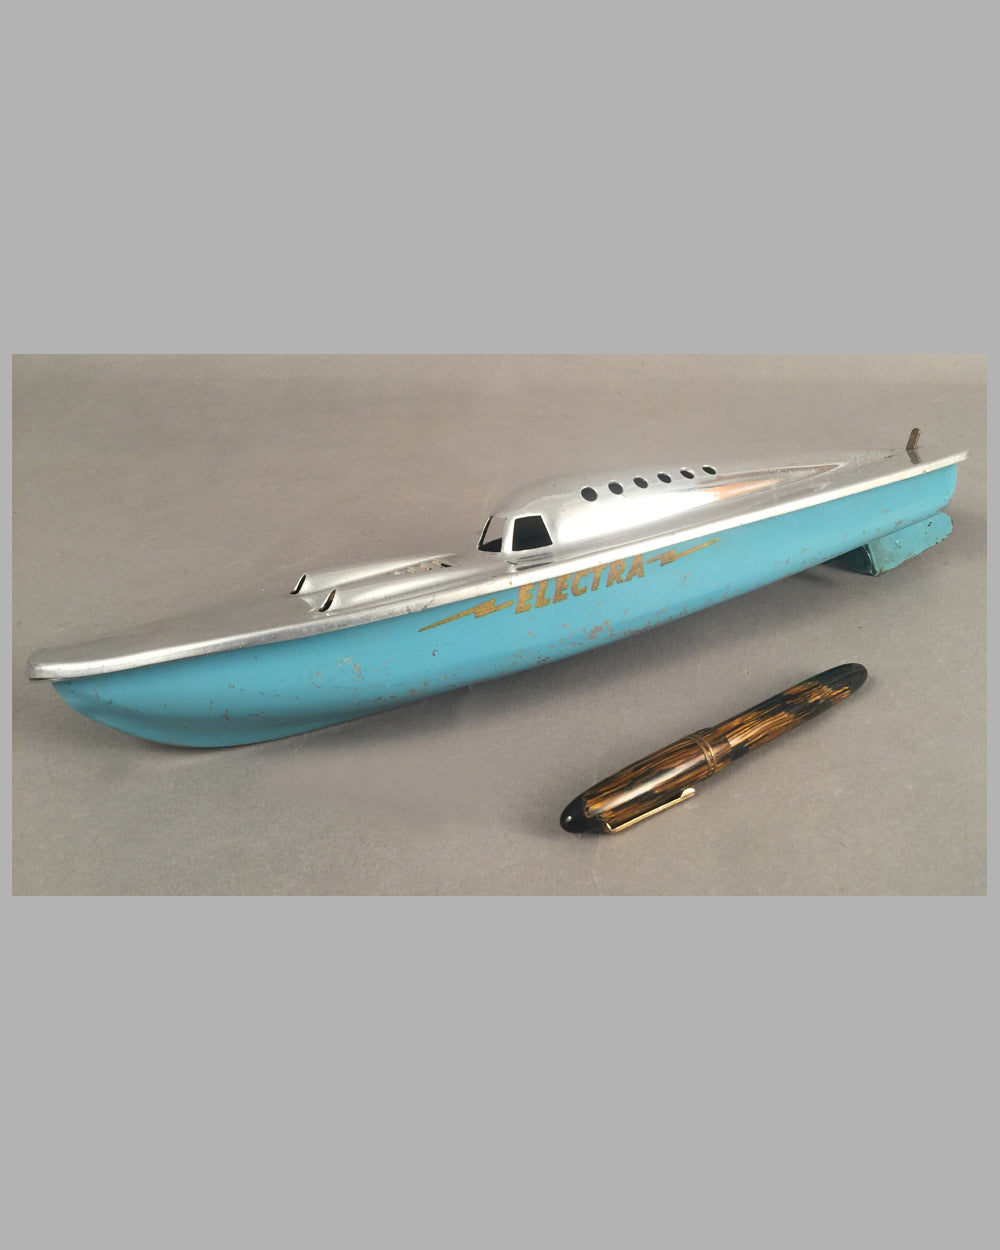 Electra speed boat model, England late 1940's